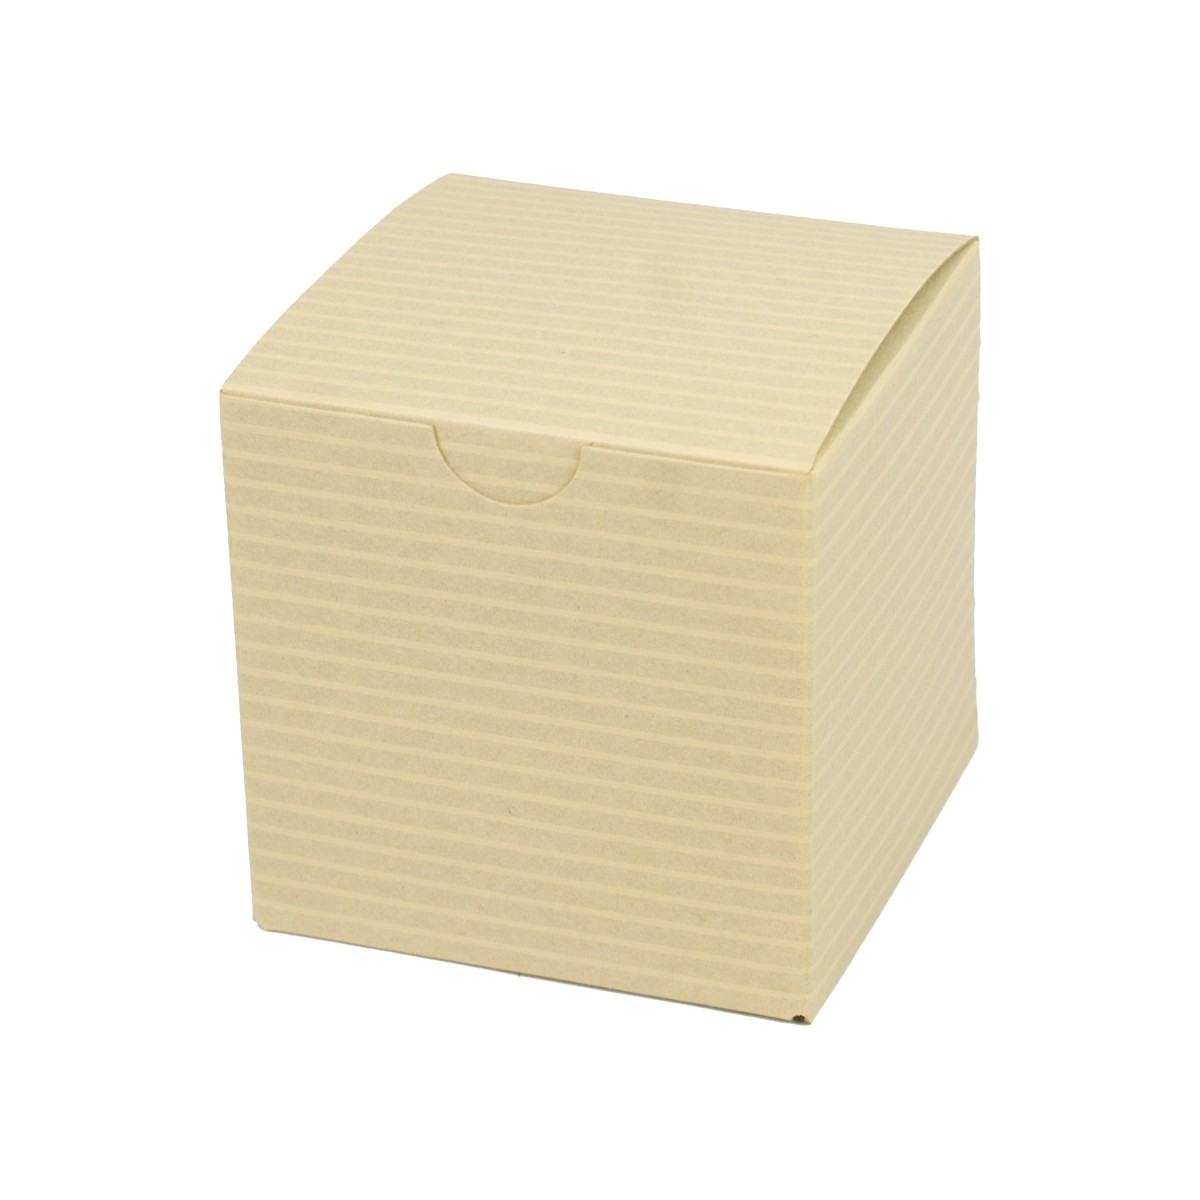 3 x 3 x 3 OATMEAL TINTED TUCK-TOP GIFT BOXES